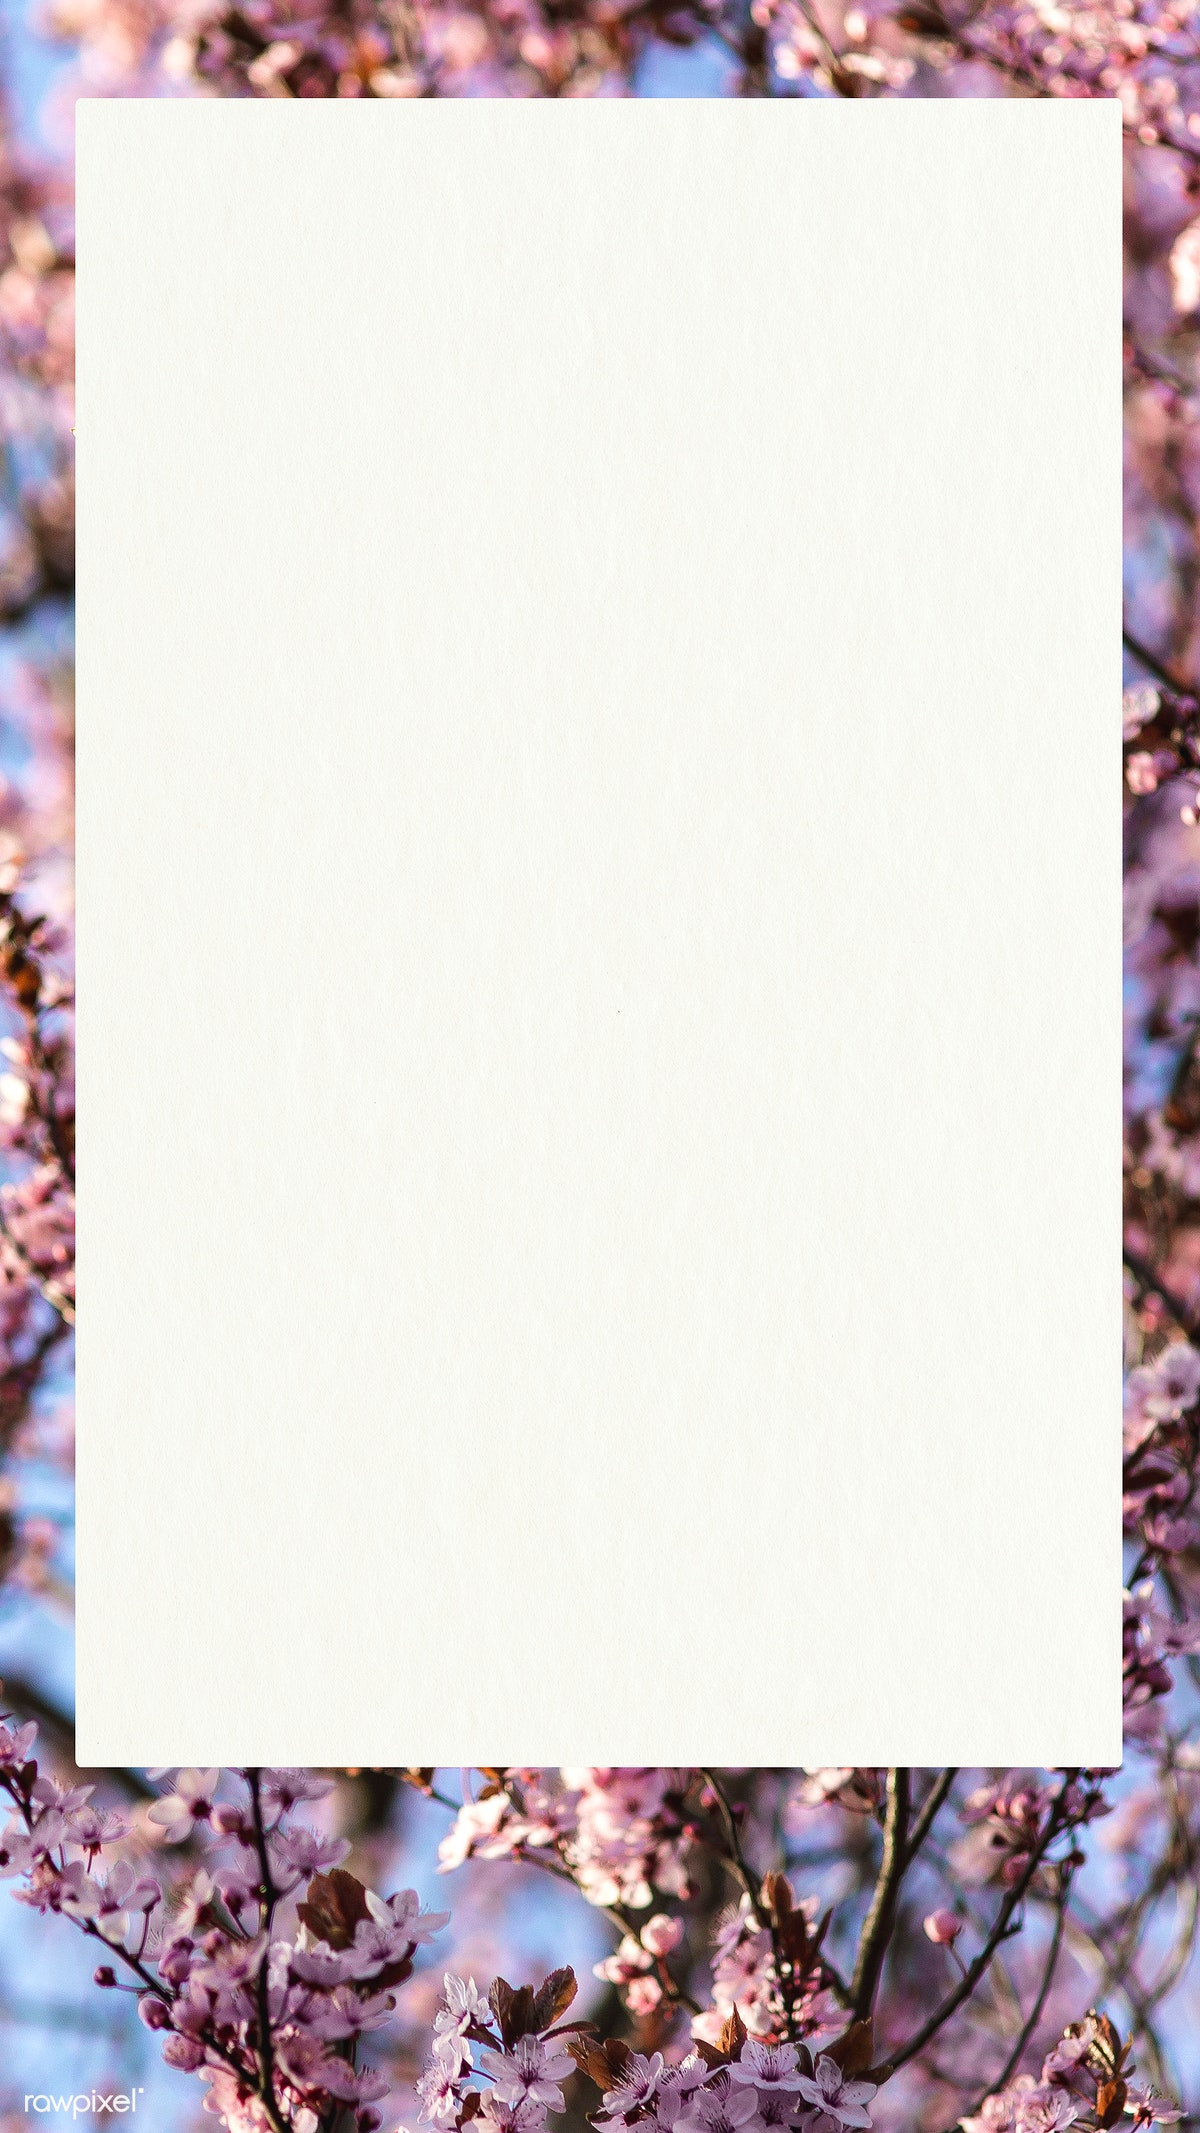 Download Premium Psd Of Poster On A Cherry Blossoms Mobile Wallpaper